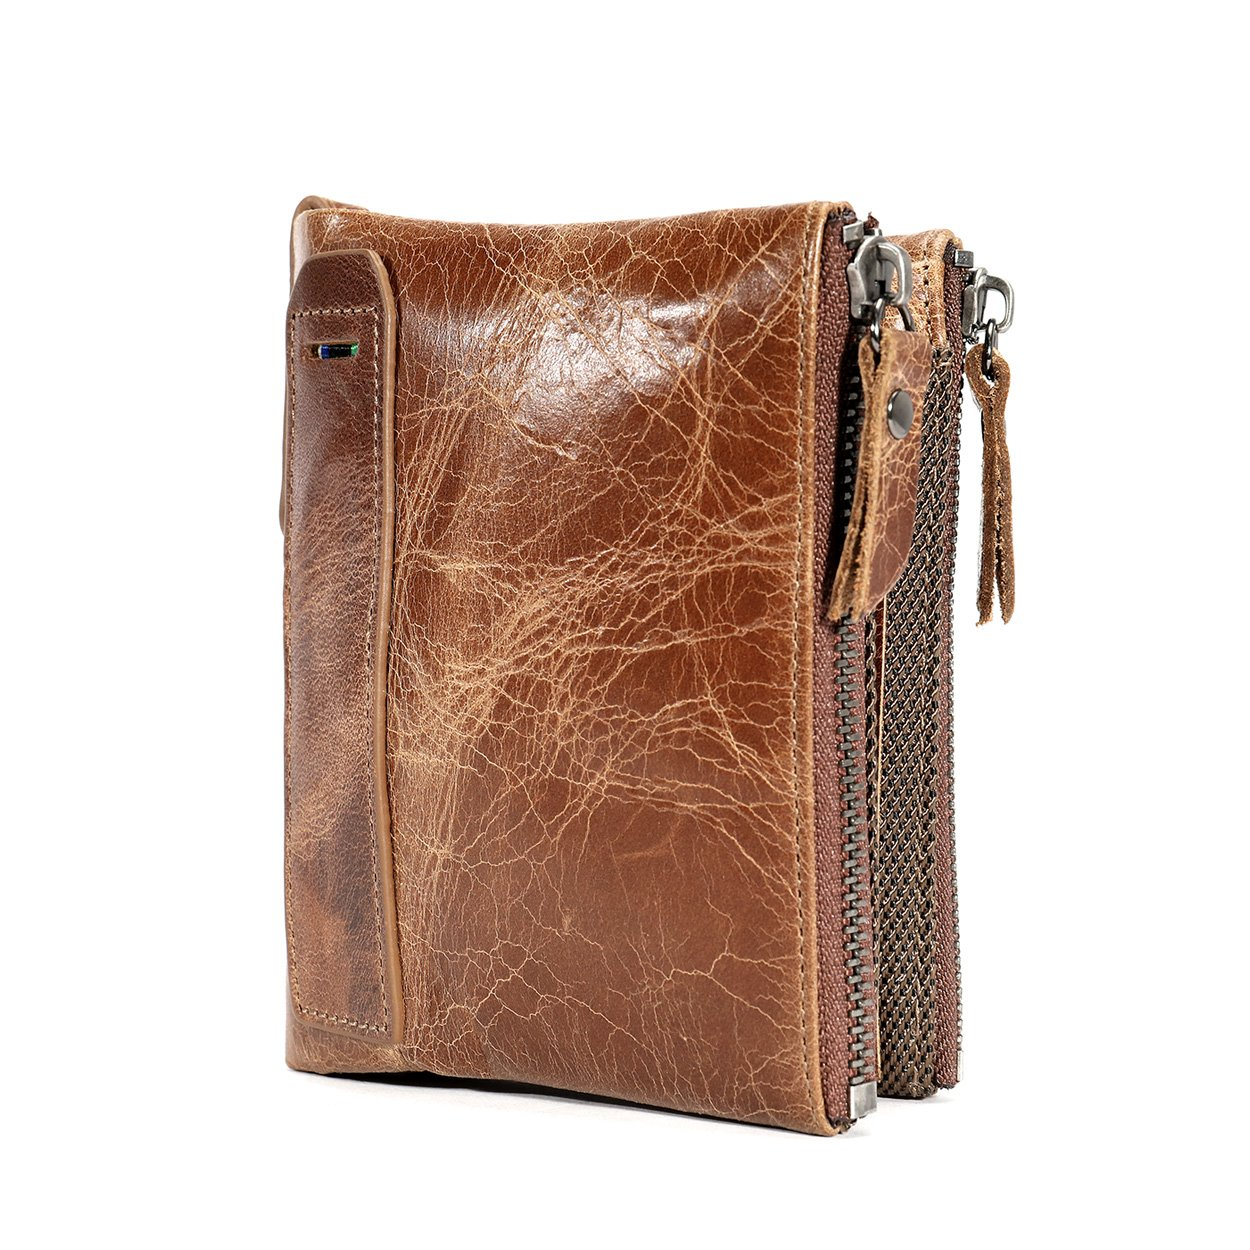 Mens Vintage Genuine Leather Minimalist Front Pocket Bifold Wallet With Zipper Coin Pockets Brown